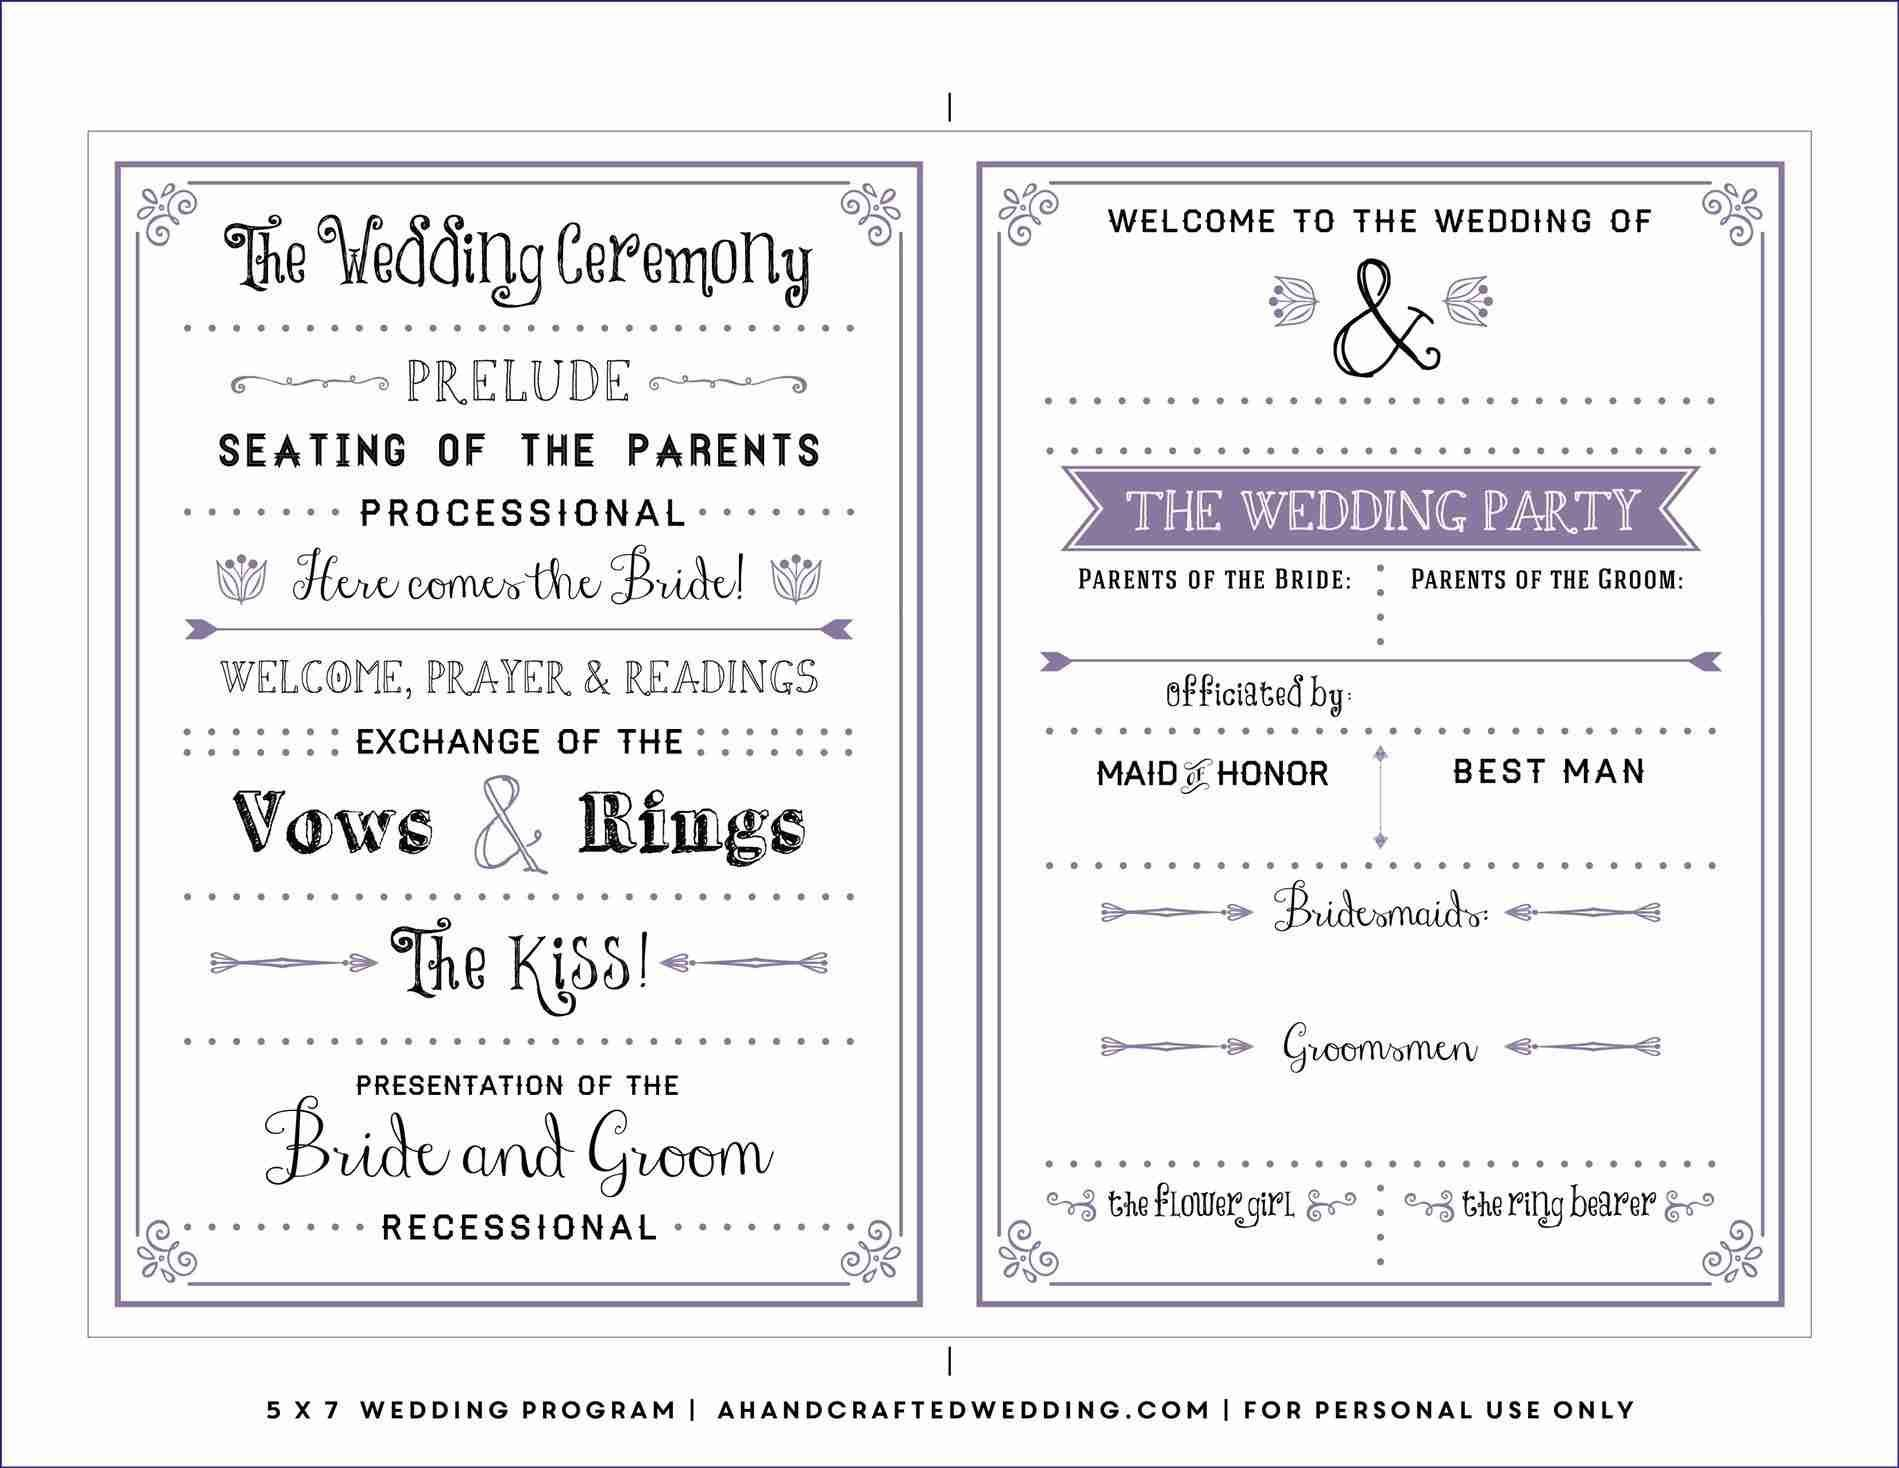 006 Excellent Free Downloadable Wedding Program Template High Definition  Templates That Can Be Printed Printable Fall ReceptionFull